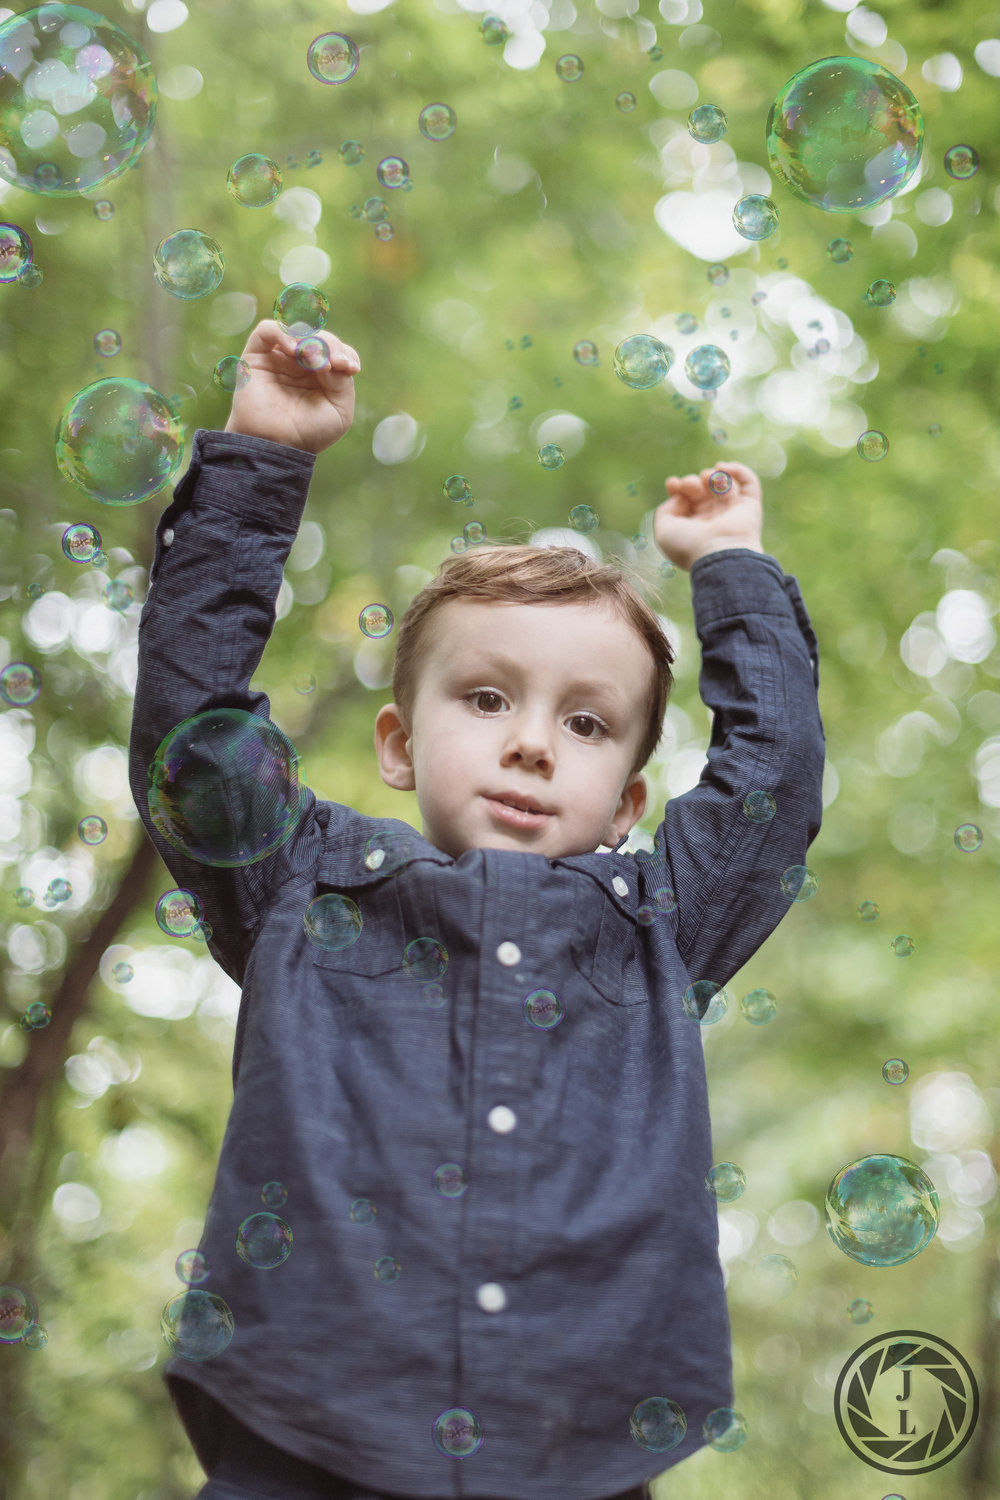 color image of a young boy waving his hands through bubbles